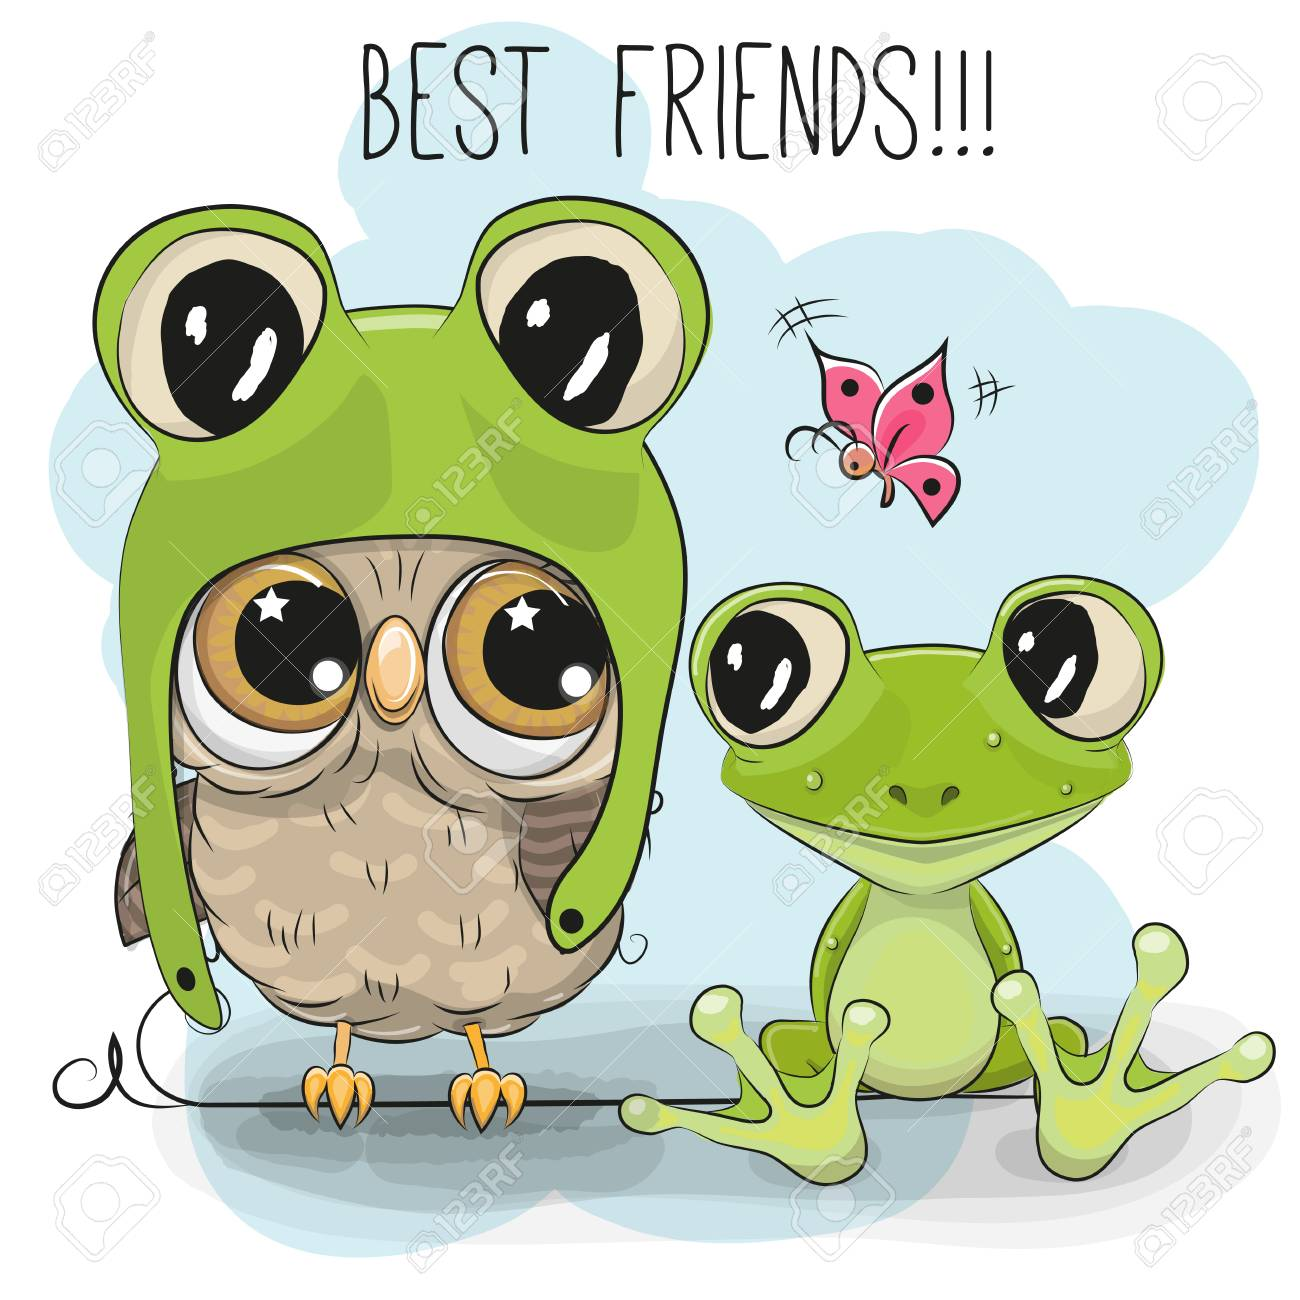 Cute Cartoon Owl In A Frog Hat And A Frog Royalty Free Cliparts ... 694773ad5337